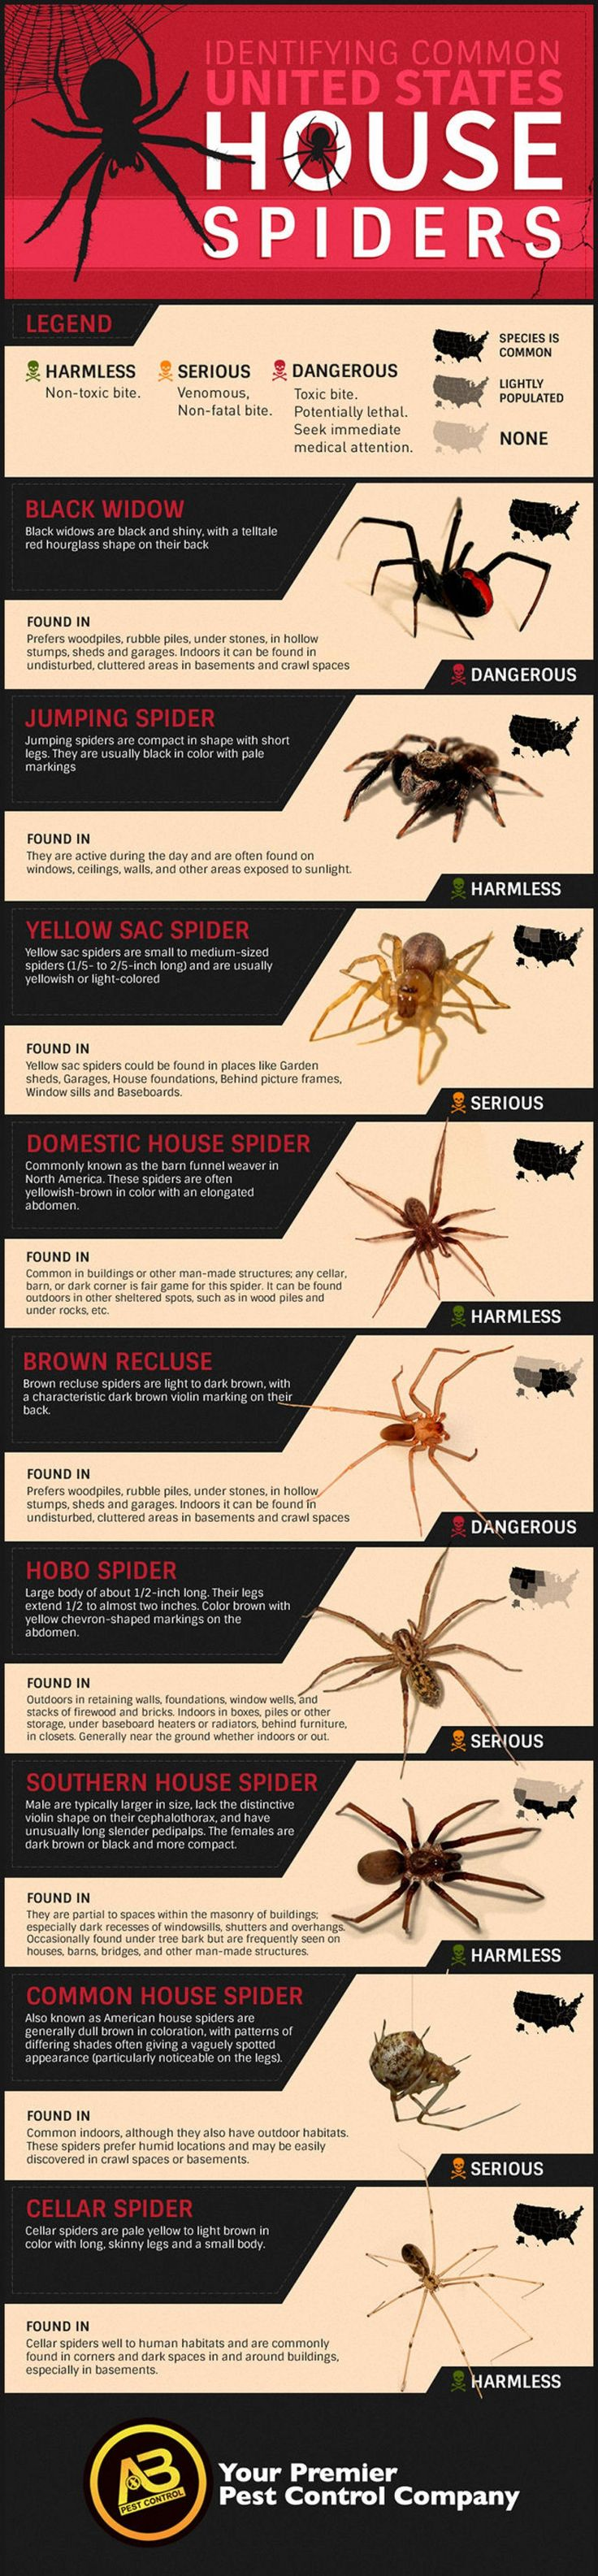 Identifying Common U.S. House Spiders Infographic #Spiders